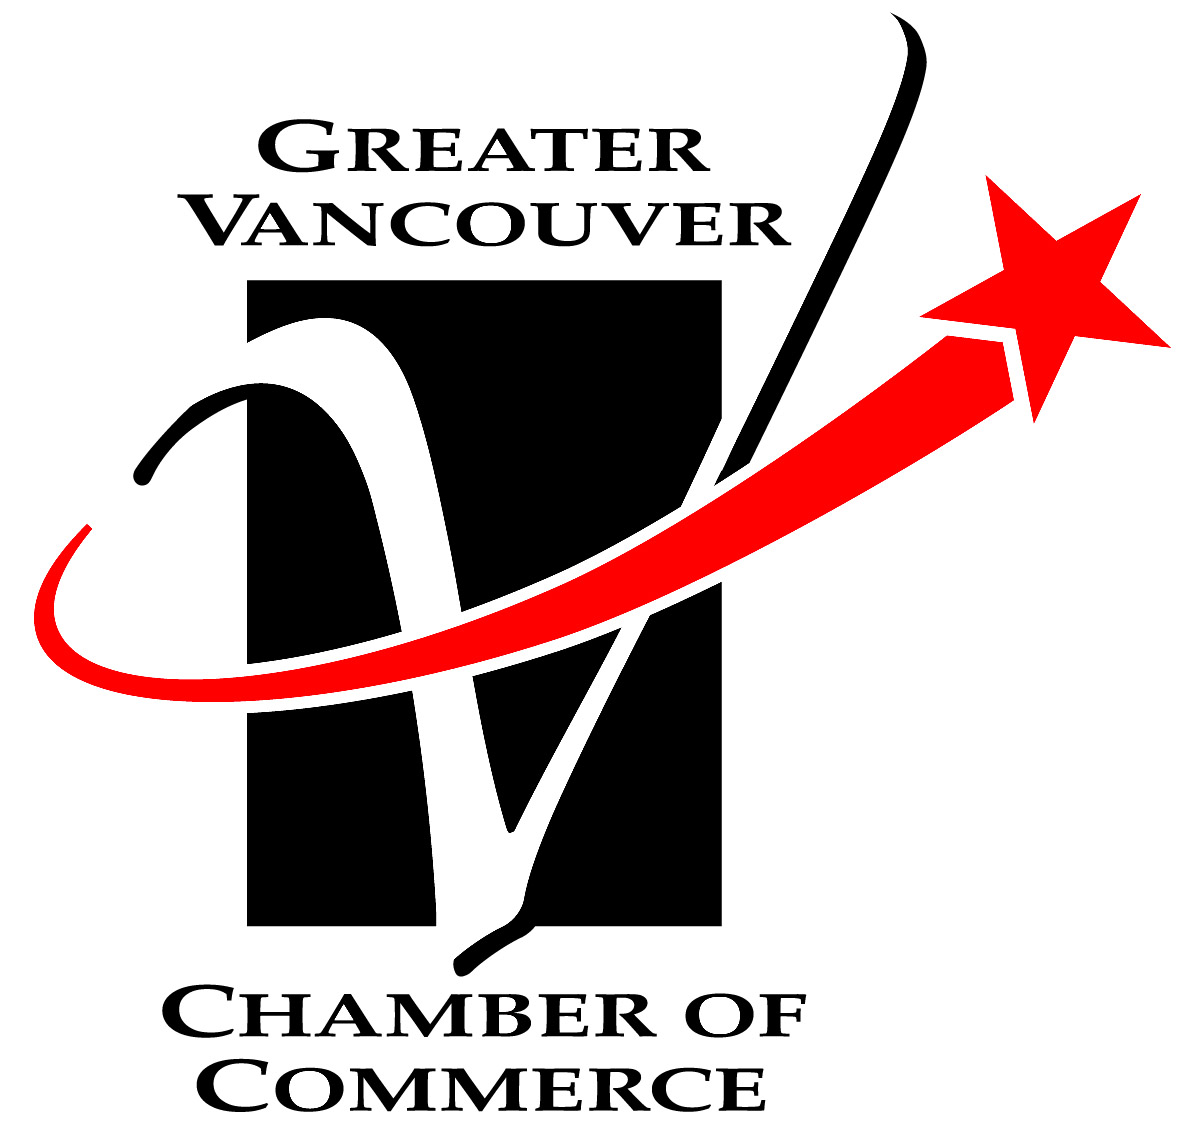 Click here for the Greater Vancouver Chamber of Commerce Website